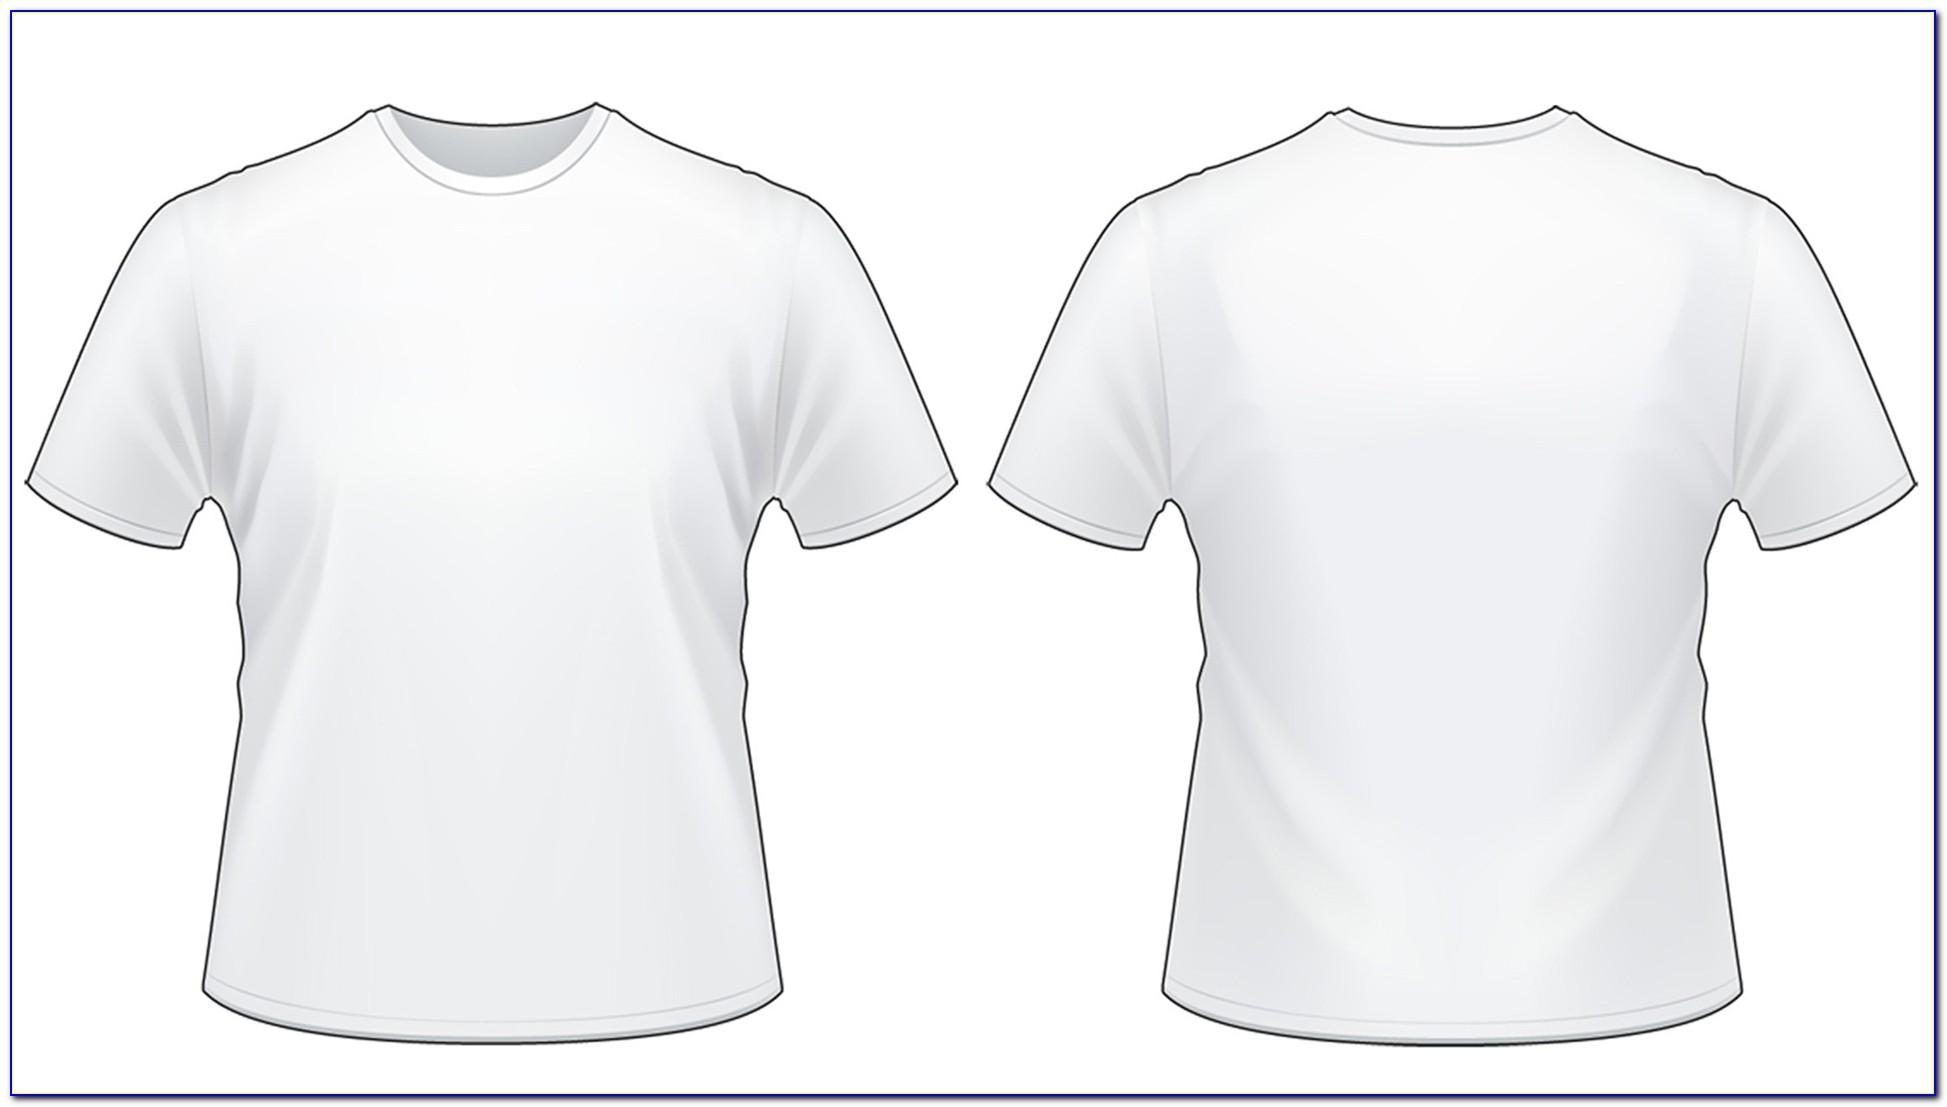 Tee Shirt Template Photoshop